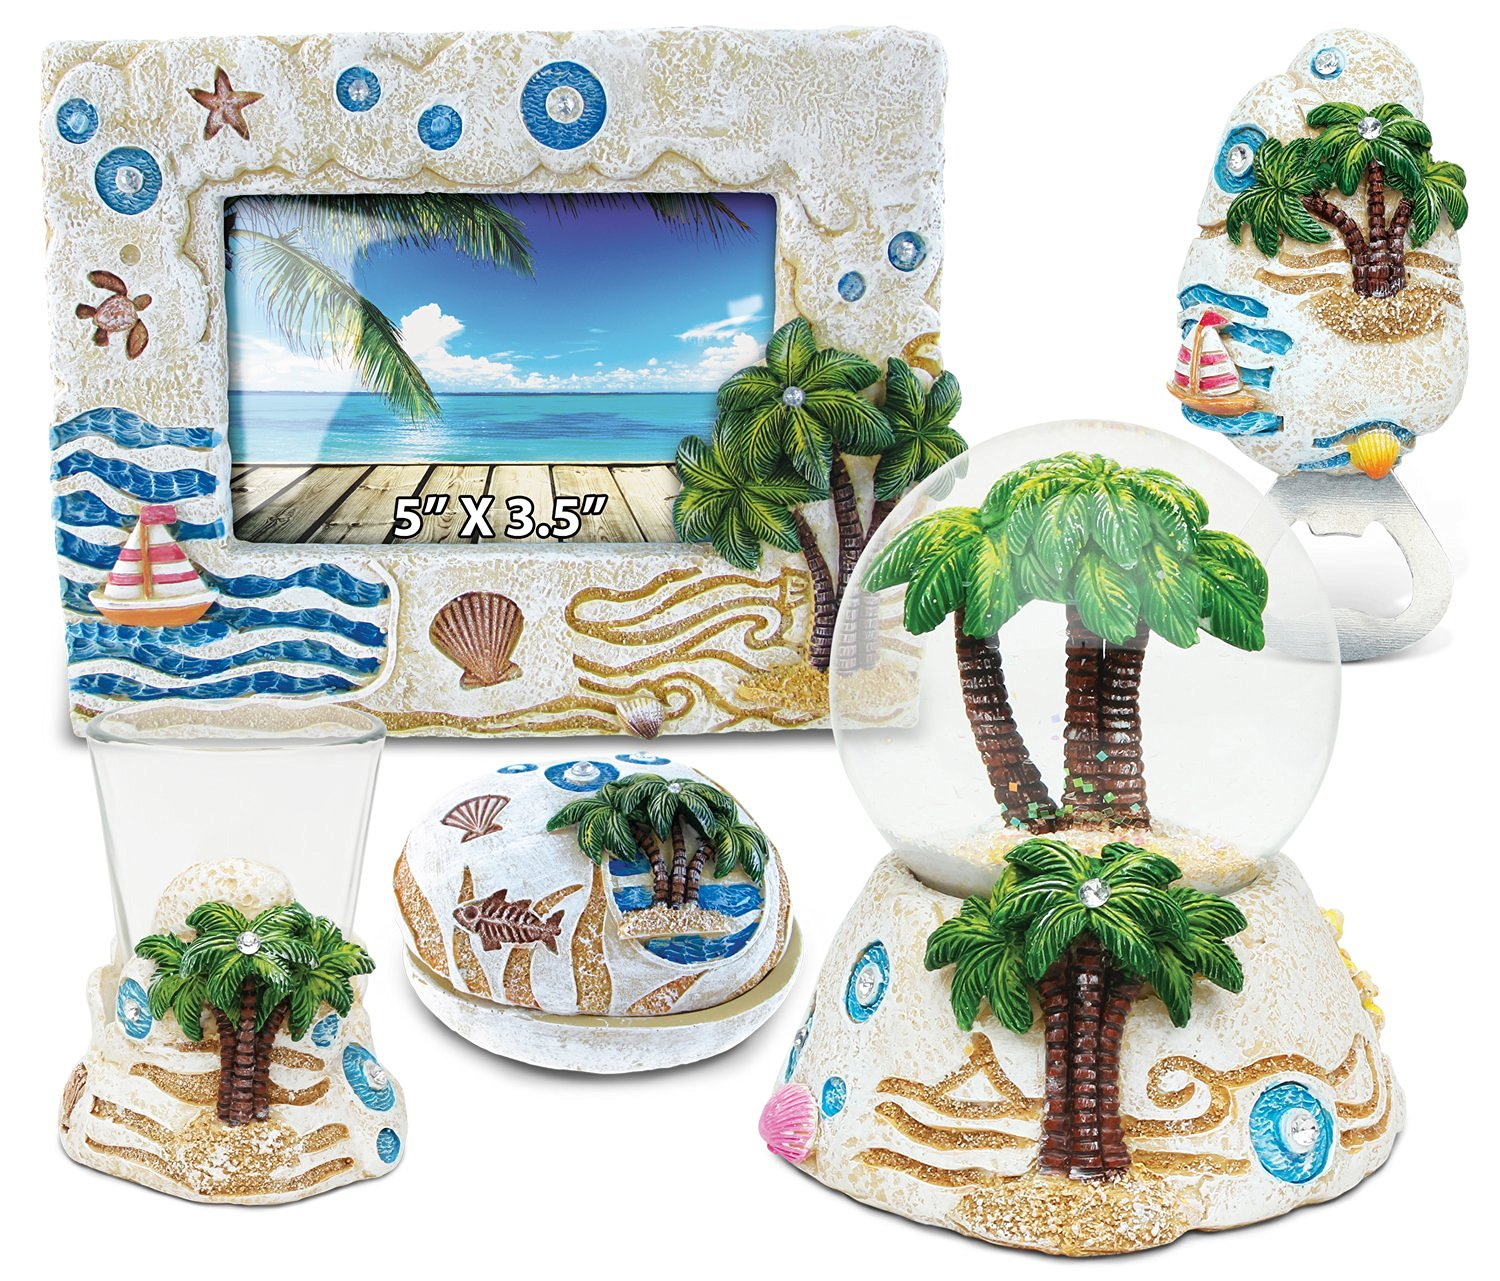 Puzzled Palm Tree Resin Stone Finish Collection including Picture/Photo Frame, Jewelry Box , Snow Globe, Magnet Bottle Opener and Shot Glass - Picture Size 5 by 3 - Unique Elegant Gift and Souvenir